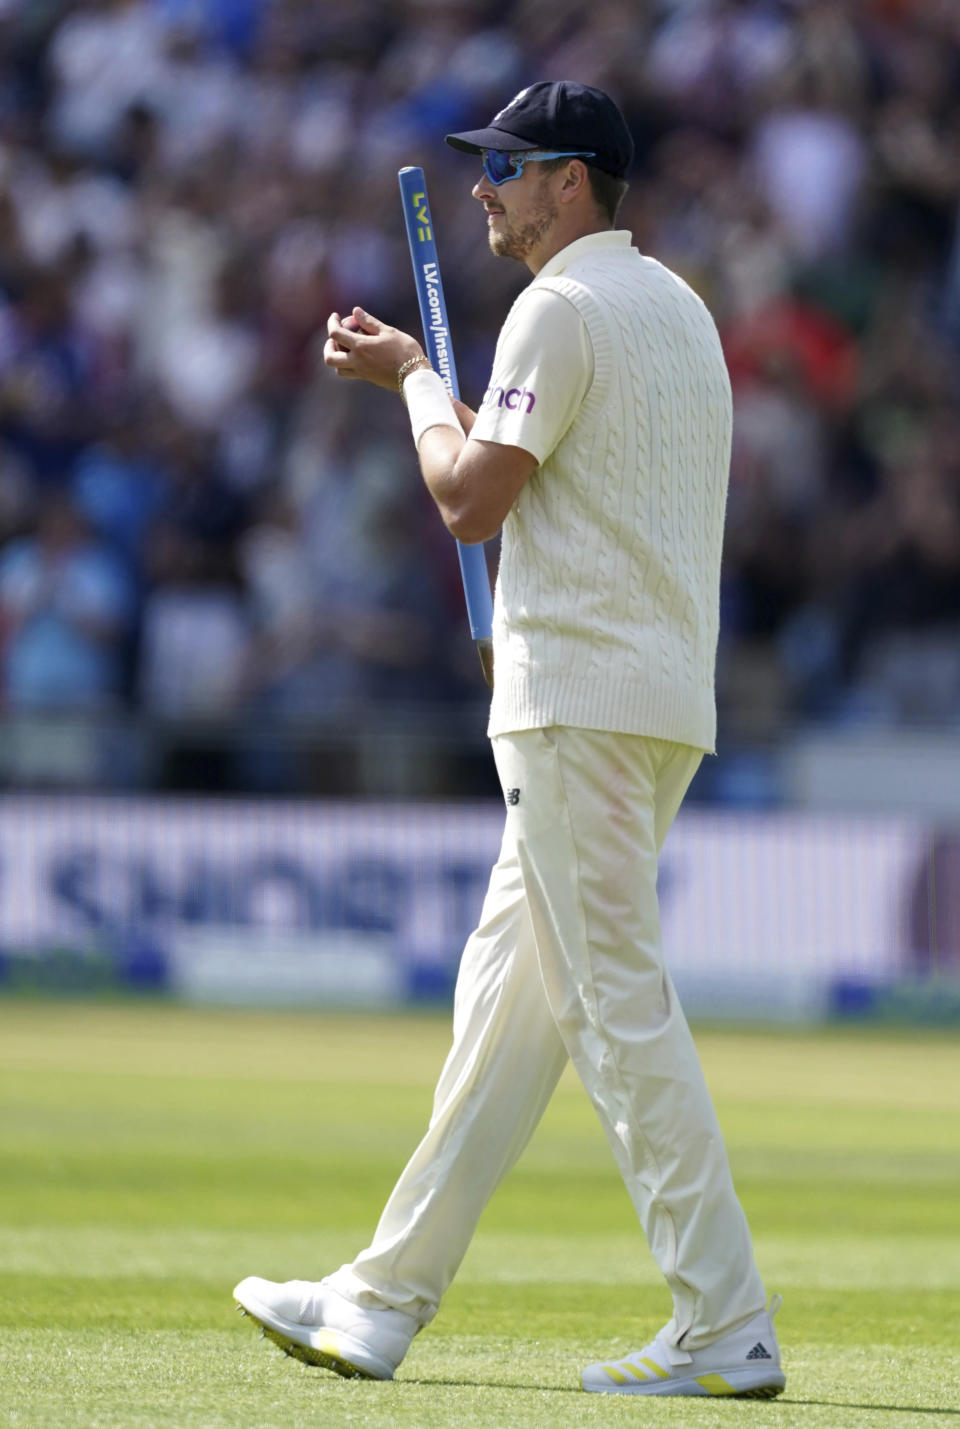 England's Ollie Robinson holds a stump as he walks off the field after their win on the fourth day of third test cricket match between England and India, at Headingley cricket ground in Leeds, England, Saturday, Aug. 28, 2021. (AP Photo/Jon Super)